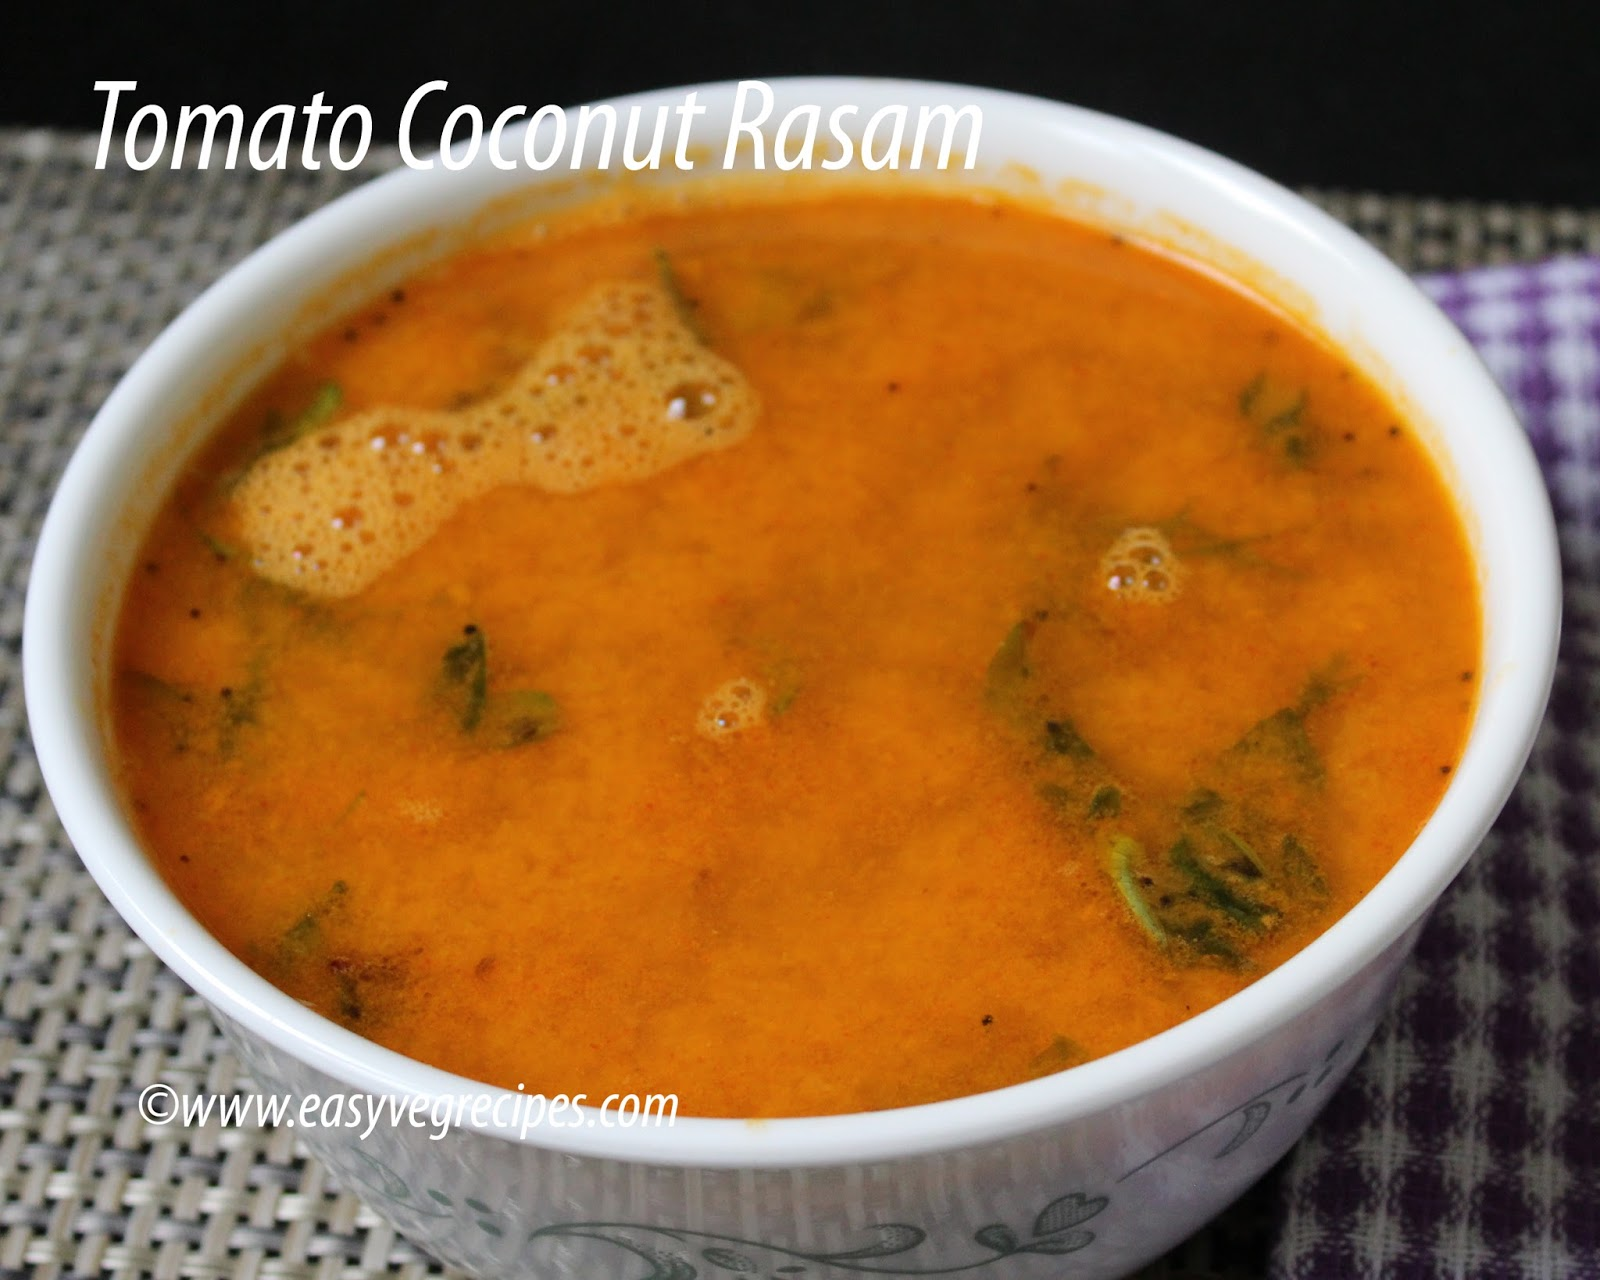 Tomato Coconut Rasam Recipe